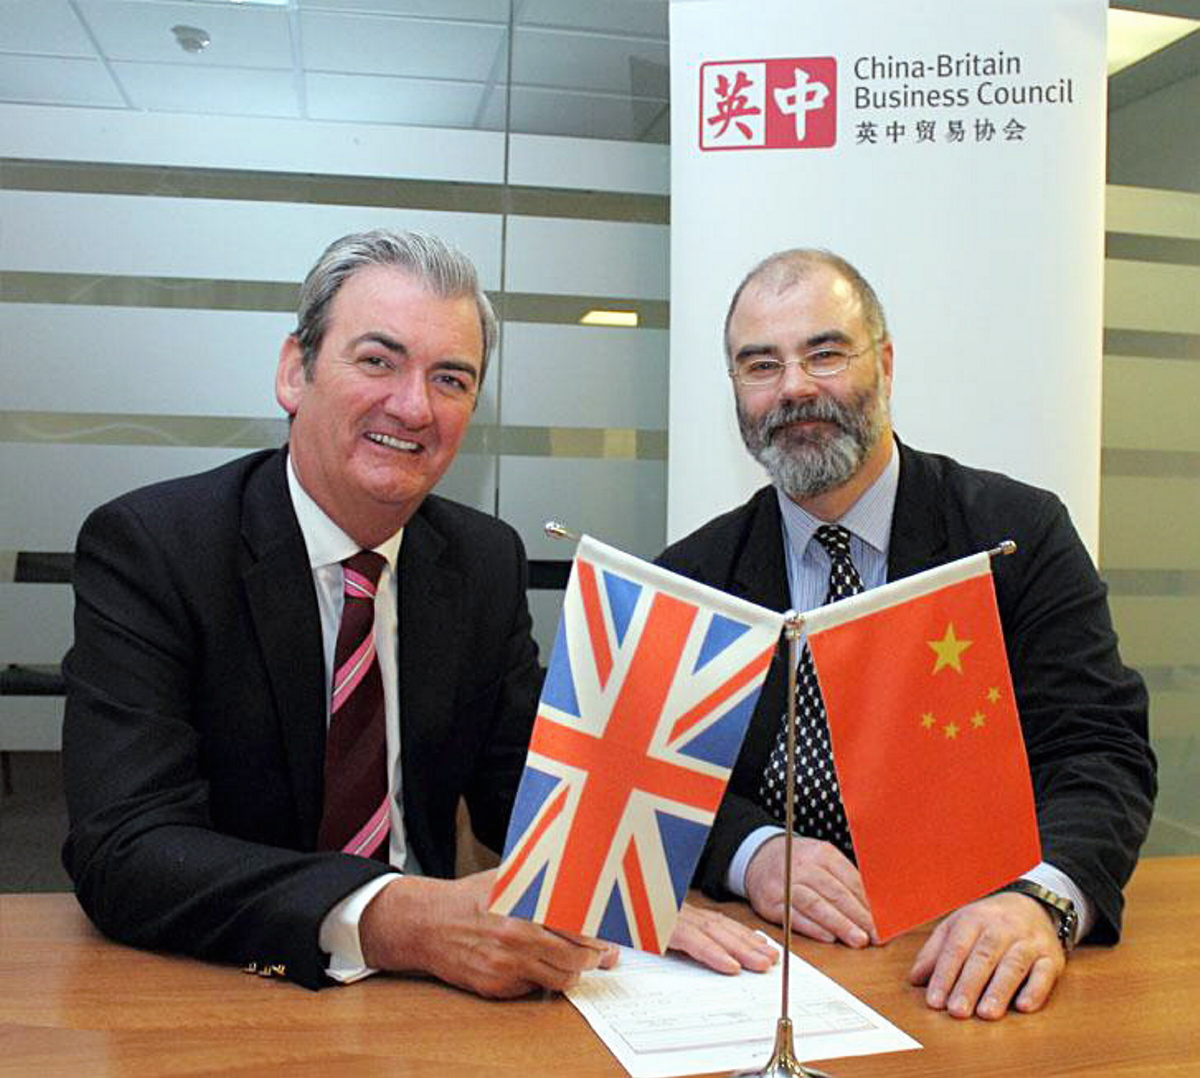 Bradford firms urged to step up trade with China